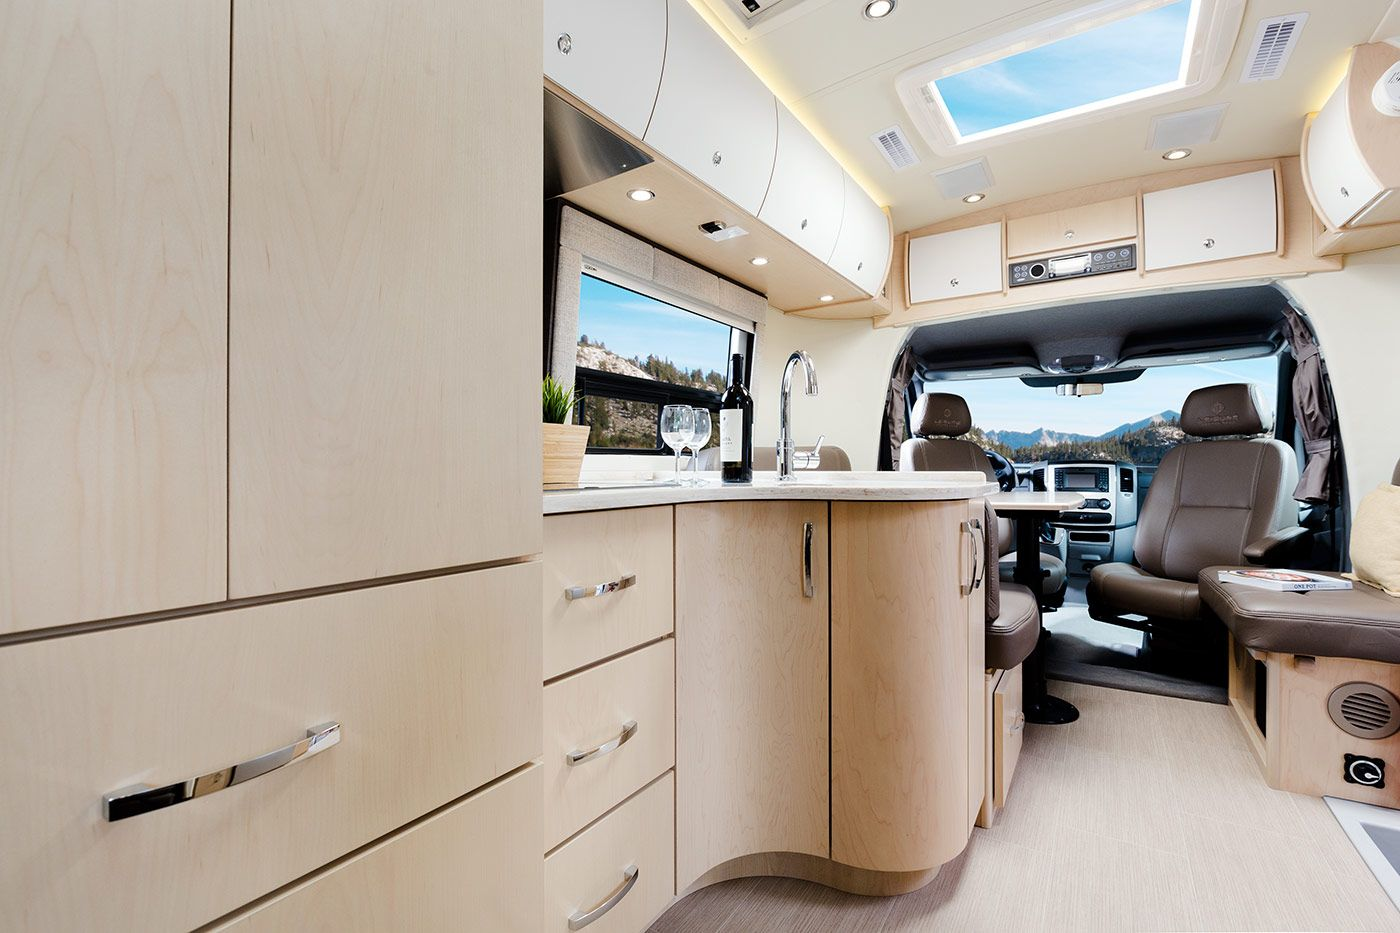 2016 Serenity Shown In Sierra Maple Cabinets With The Optional - Salon Caravane 2016